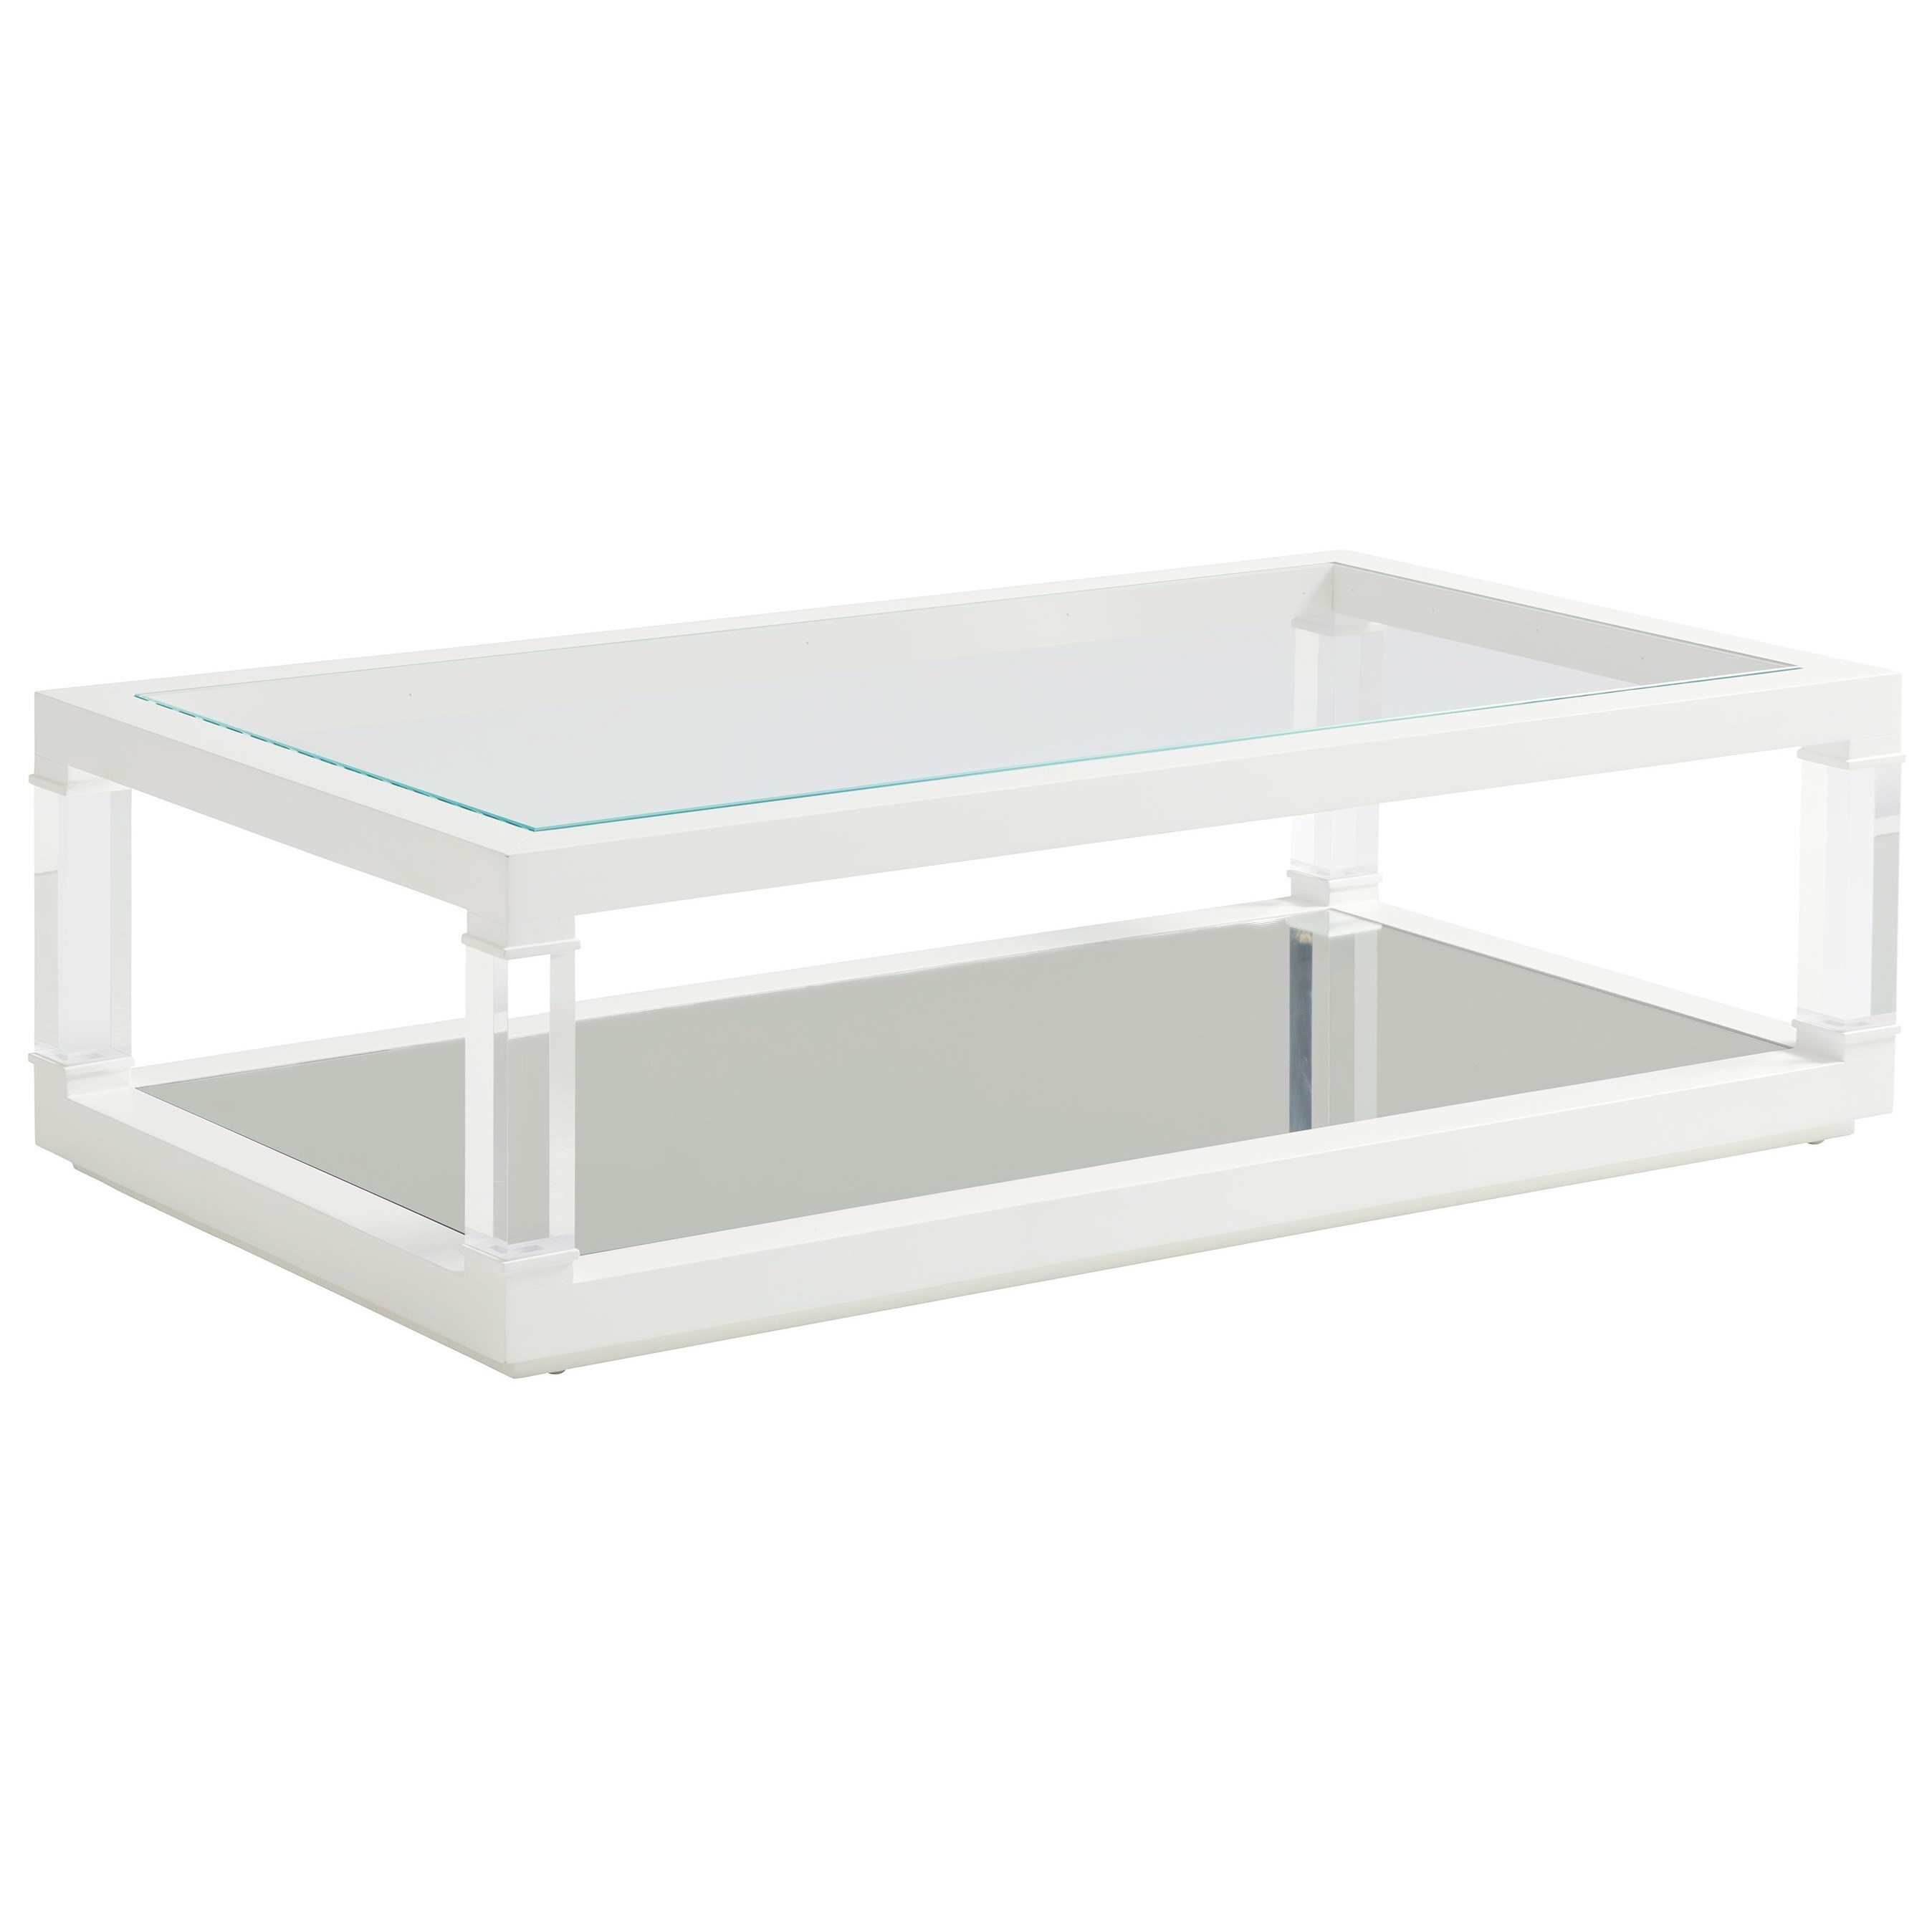 Avondale Riverdale Cocktail Table by Lexington at Fisher Home Furnishings